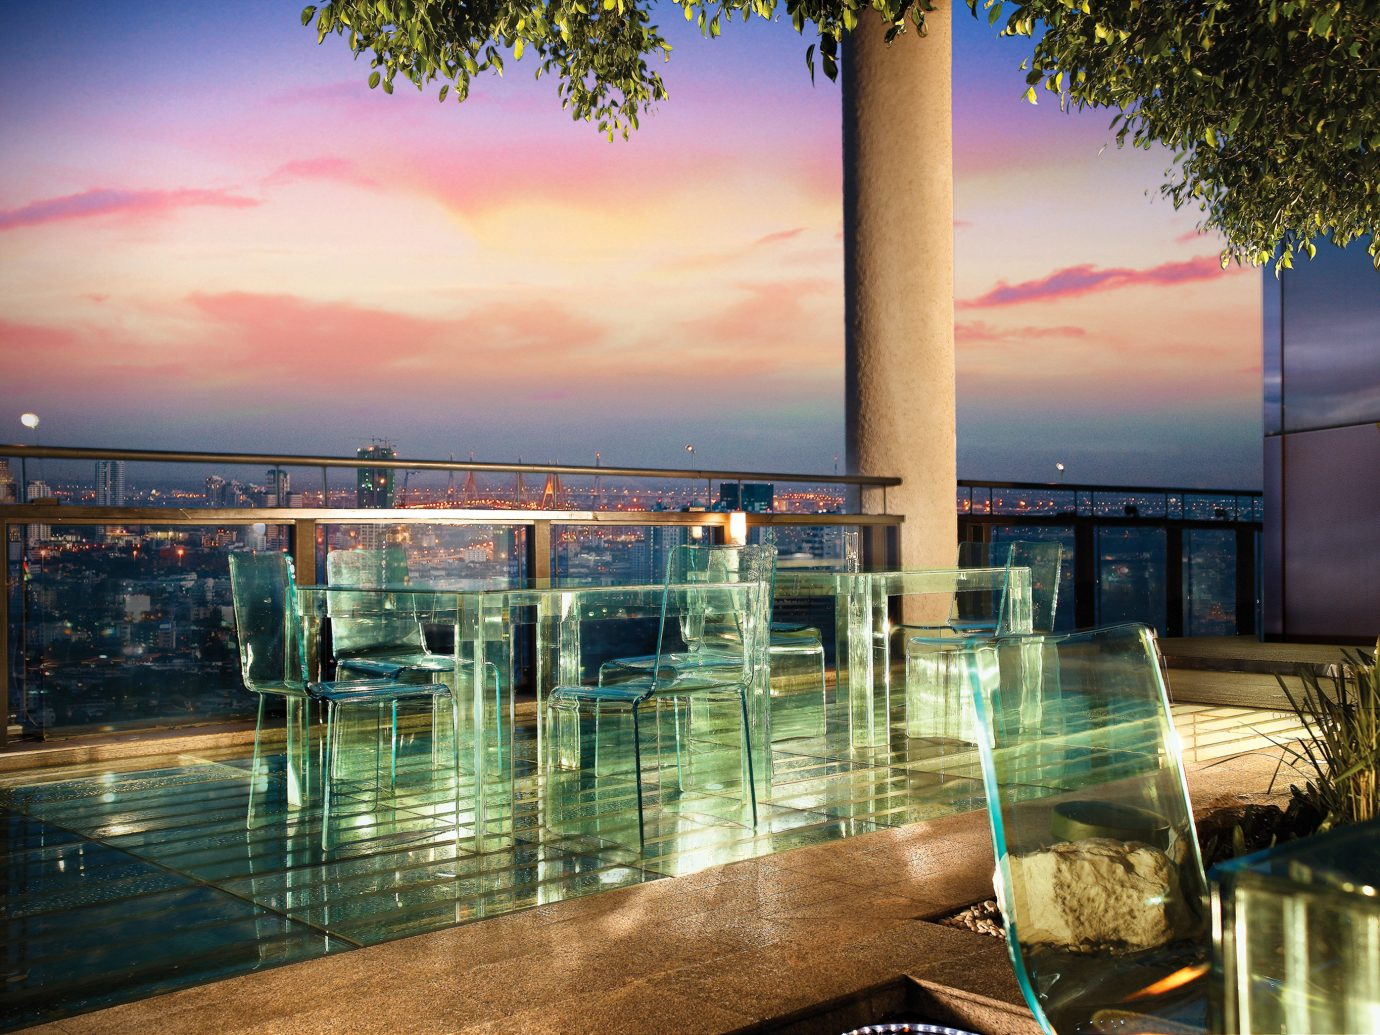 Deck Hotels Living Lounge Scenic views Sunset outdoor reflection vacation evening estate dusk shore